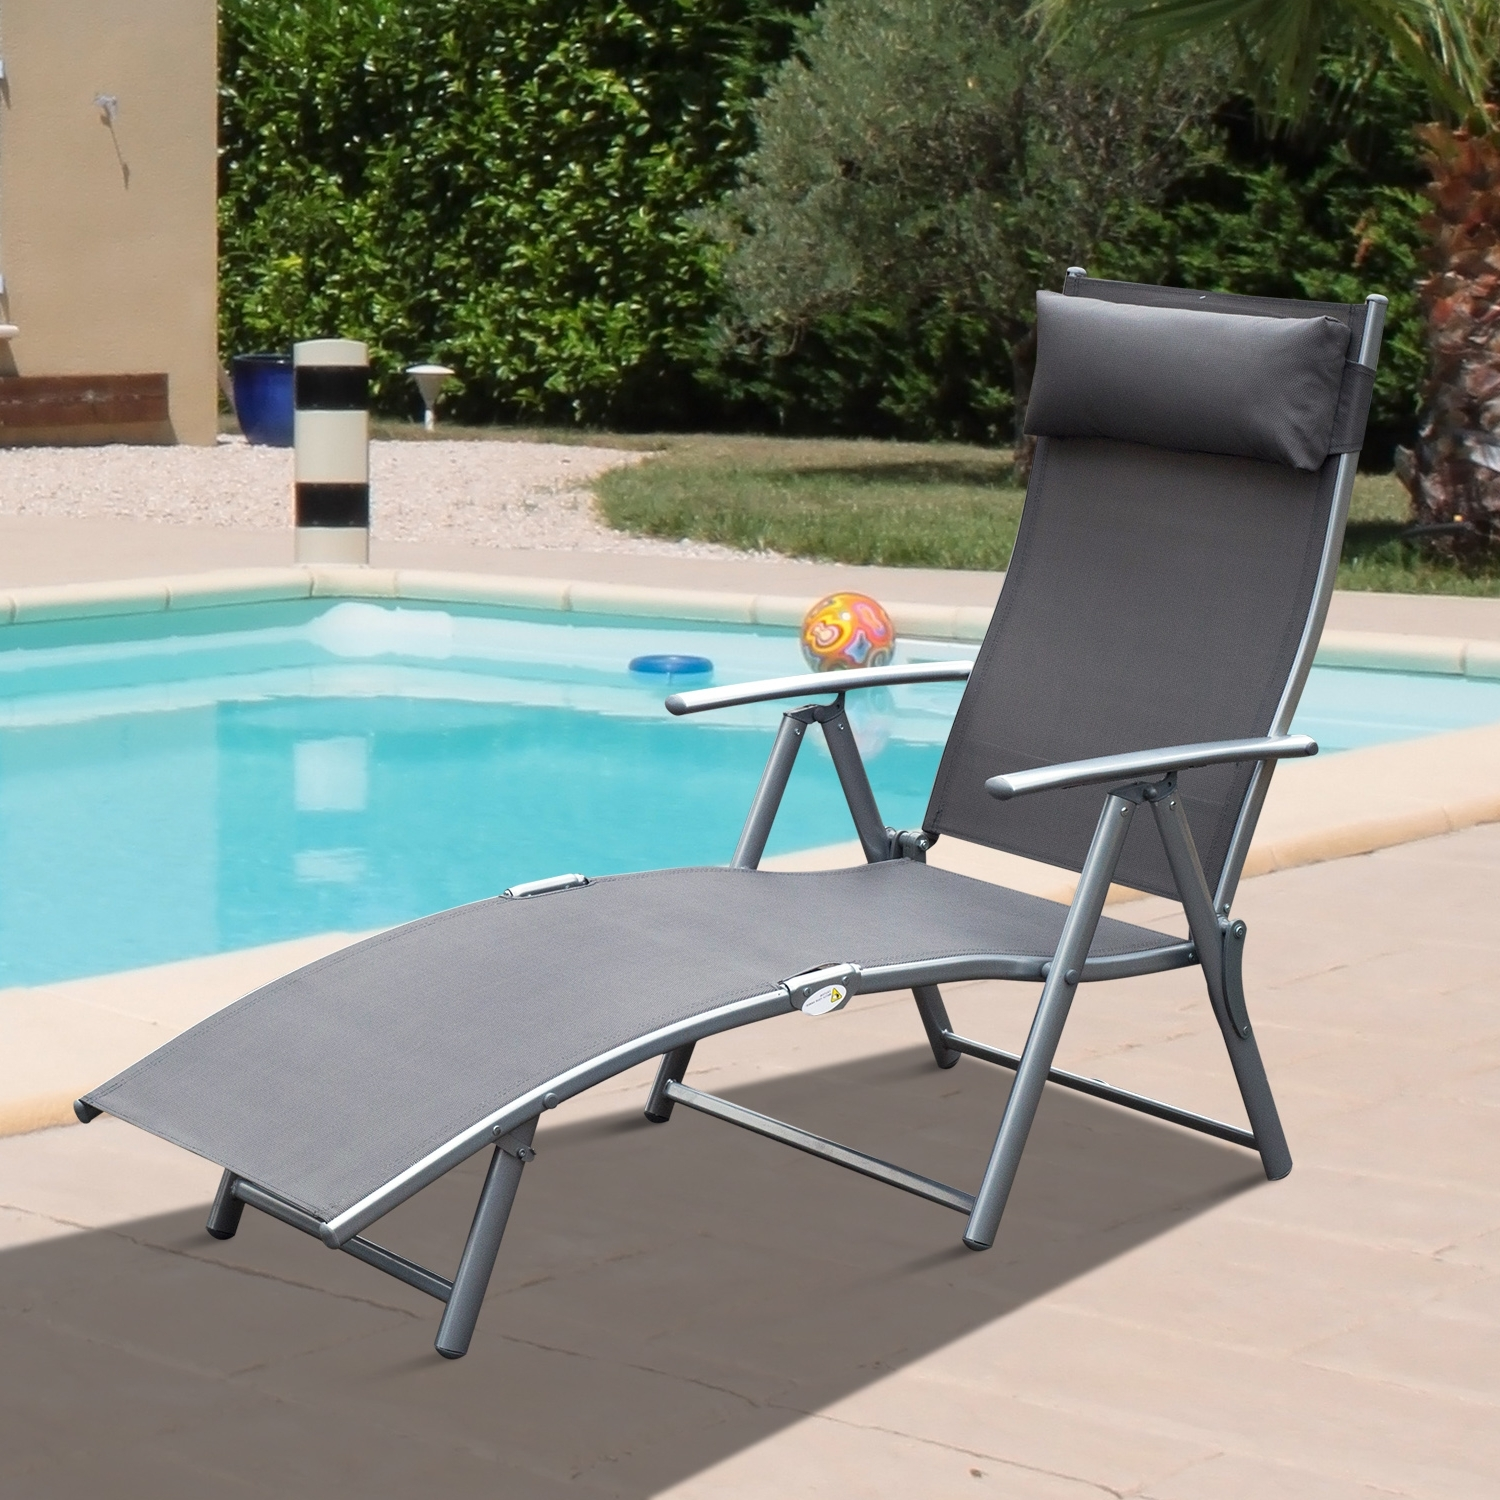 Most Current Chaise Lounge Chair Folding Pool Beach Yard Adjustable Patio Throughout Adjustable Pool Chaise Lounge Chair Recliners (View 11 of 15)